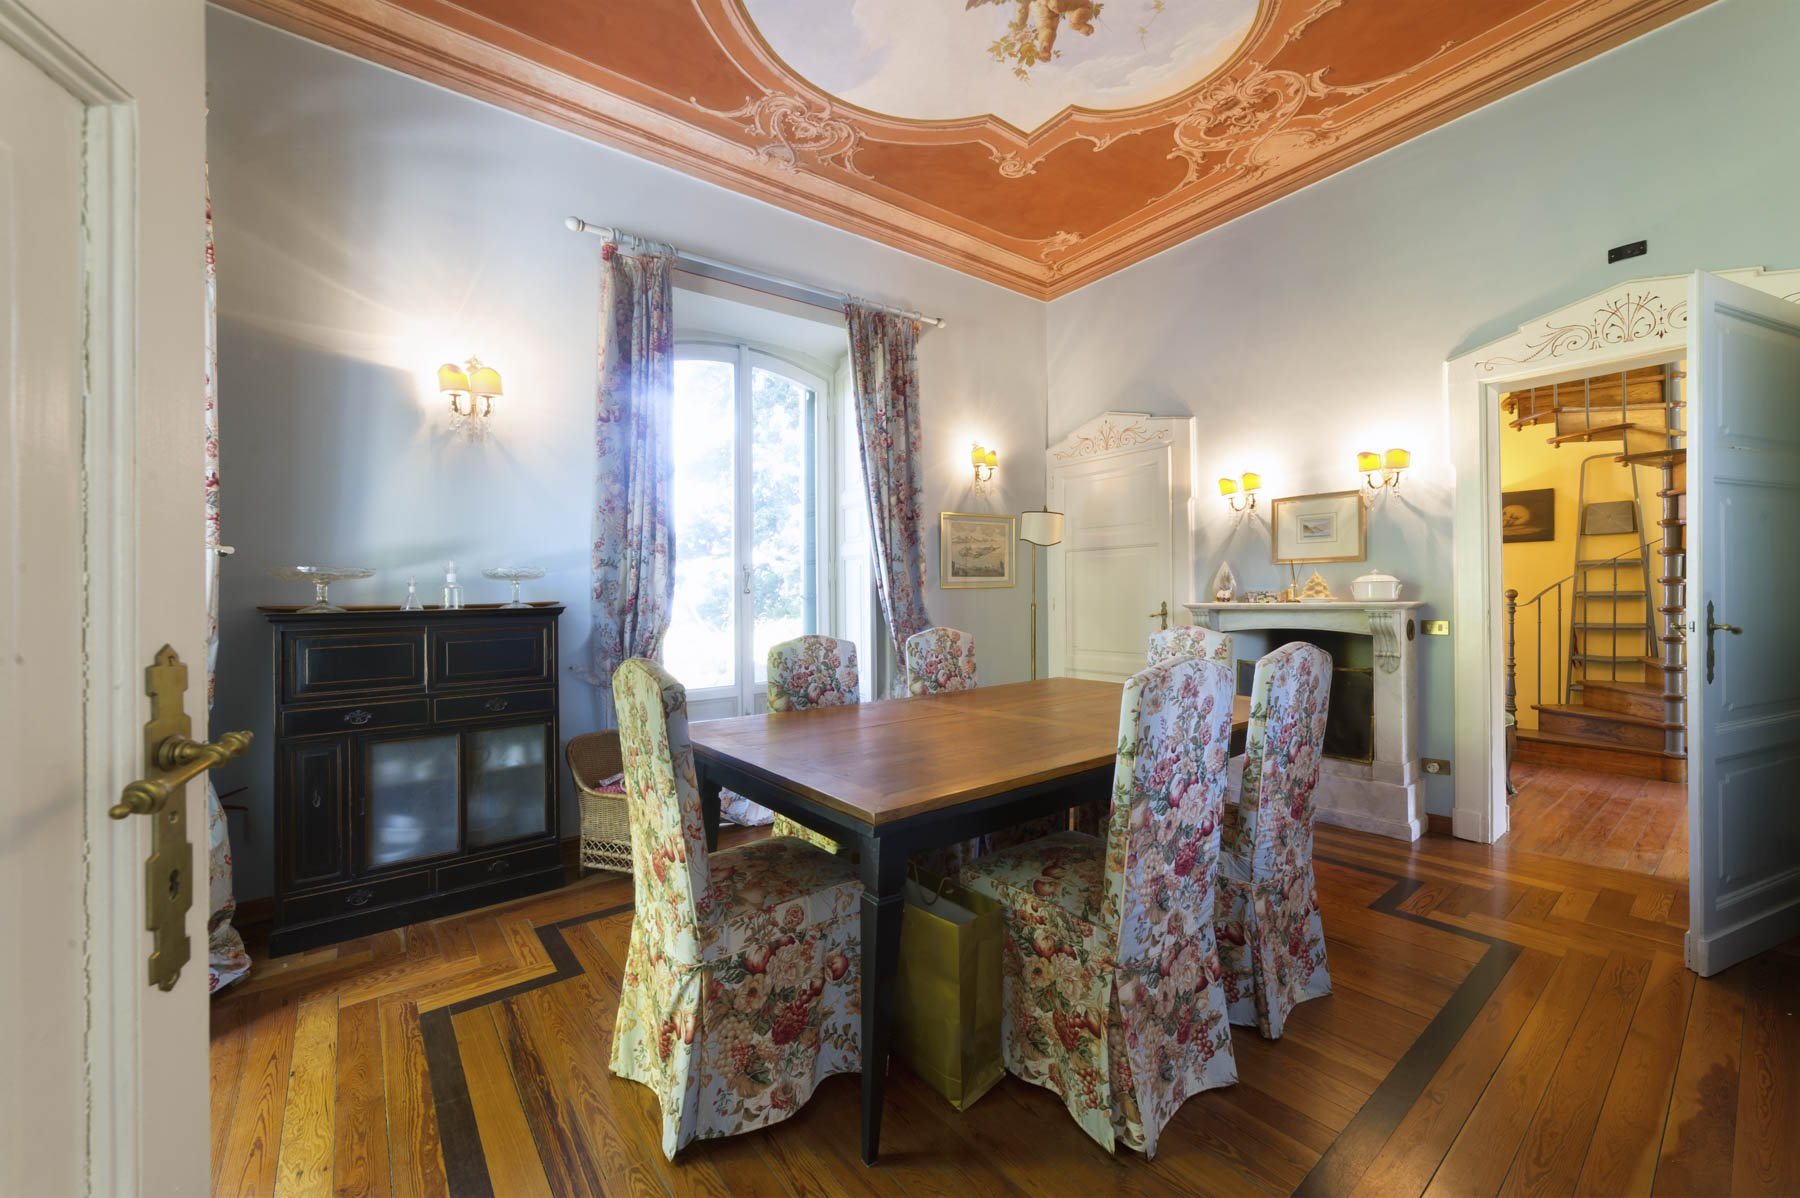 Luxurious apartment for sale in Stresa - dining room